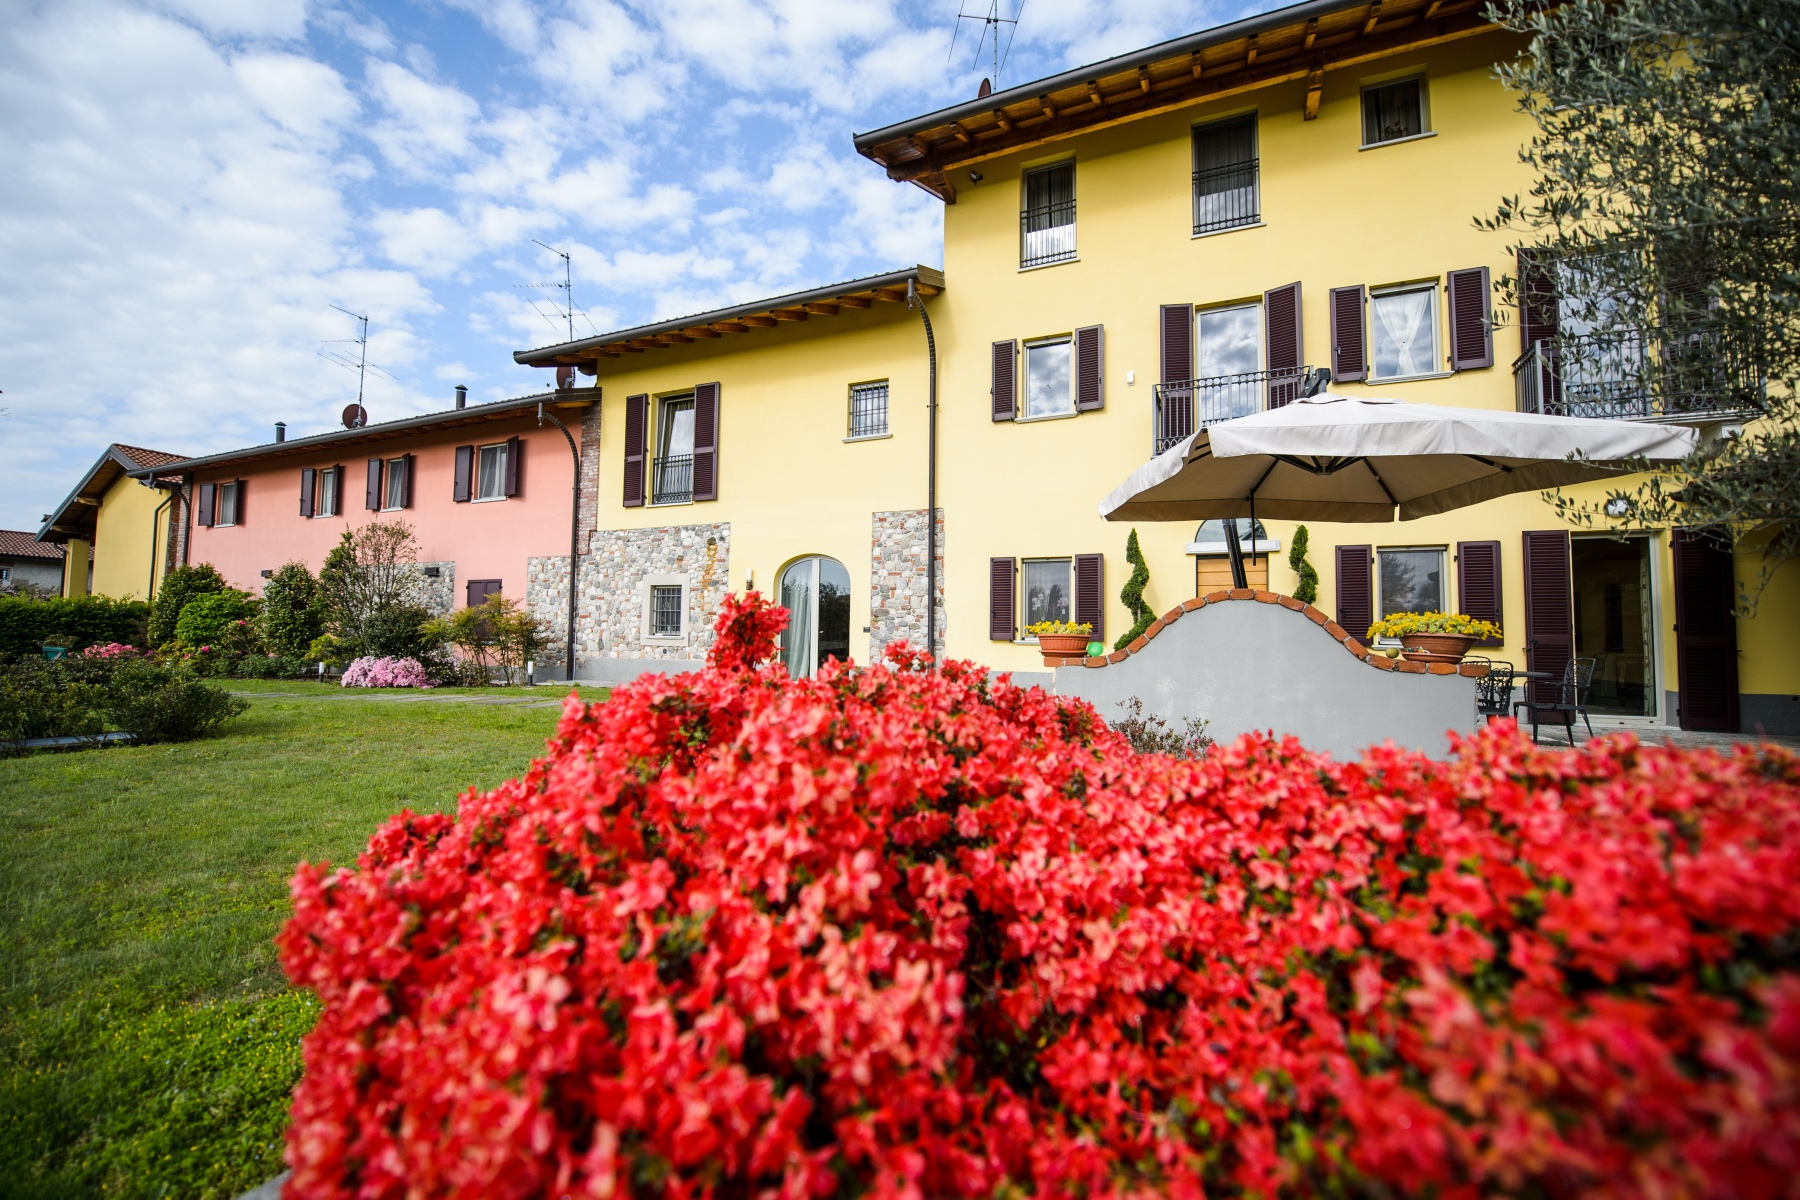 Single Family Homes for Sale at Farmhouse in the countryside a few steps from the Golf courses Agrate Conturbia, Novara Italy